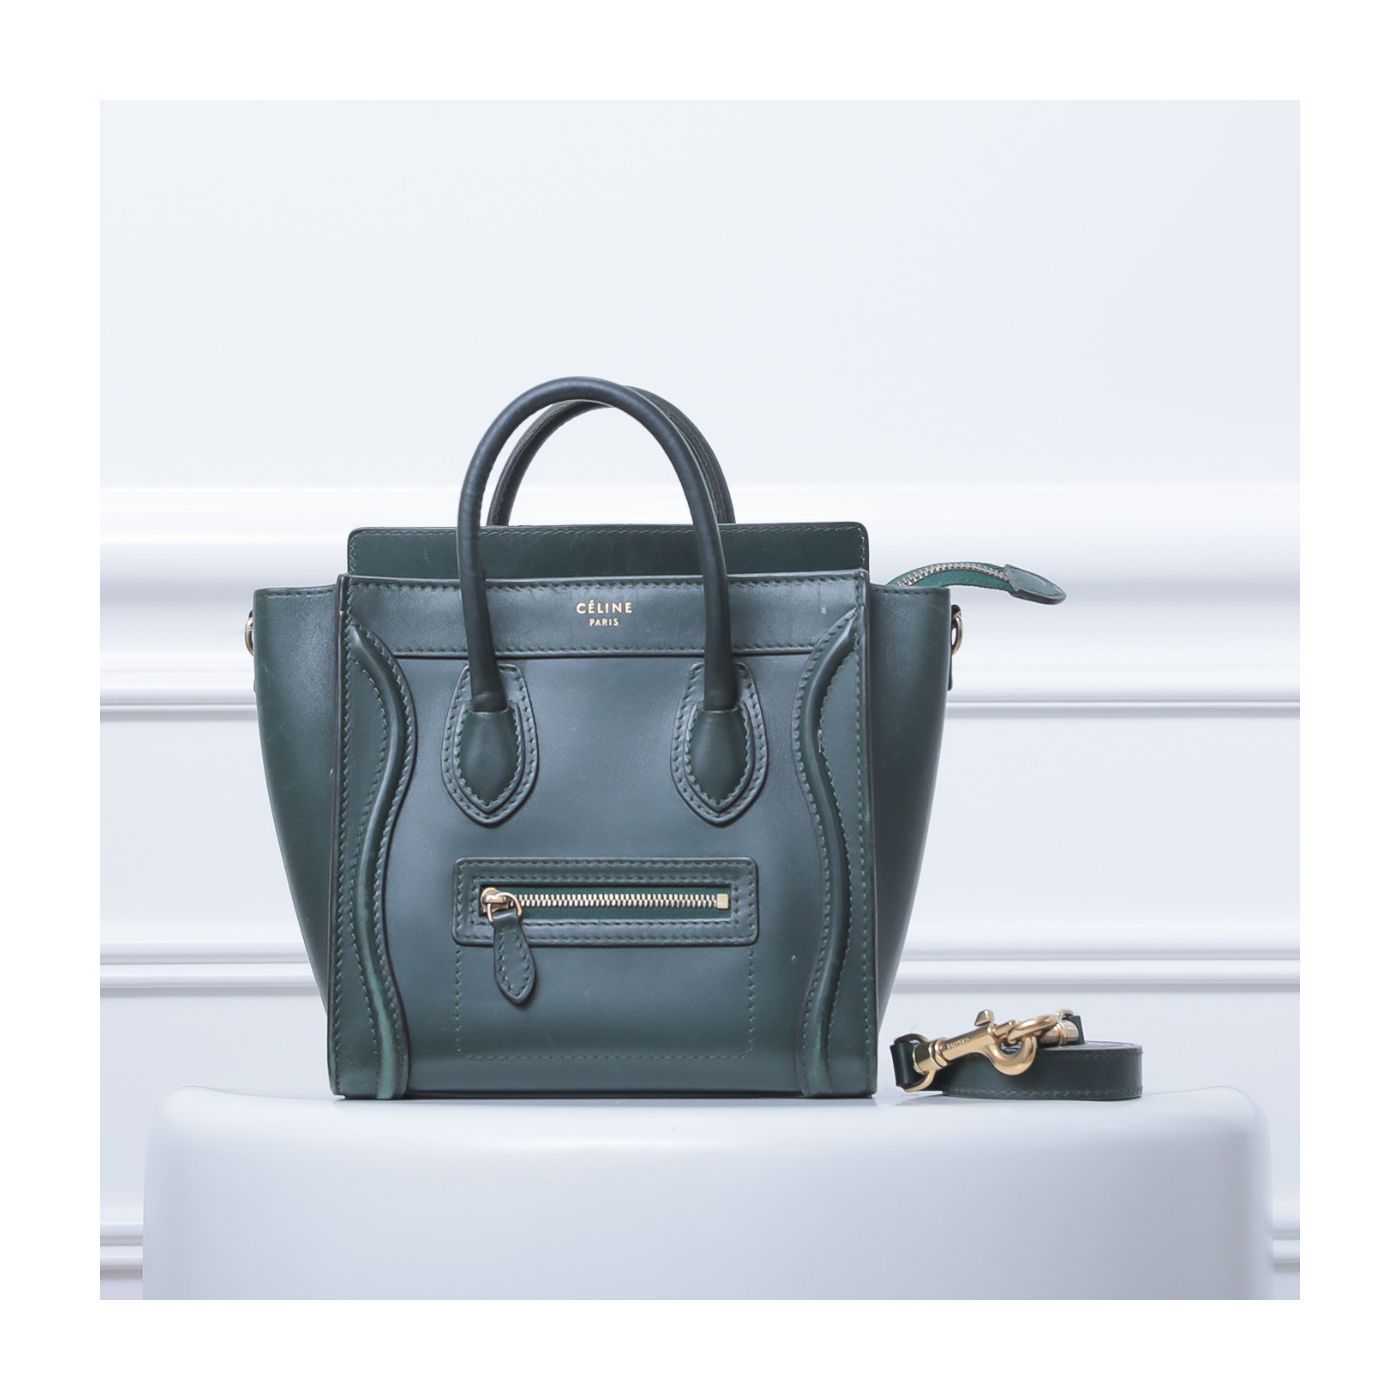 Celine Moss Green Nano Luggage